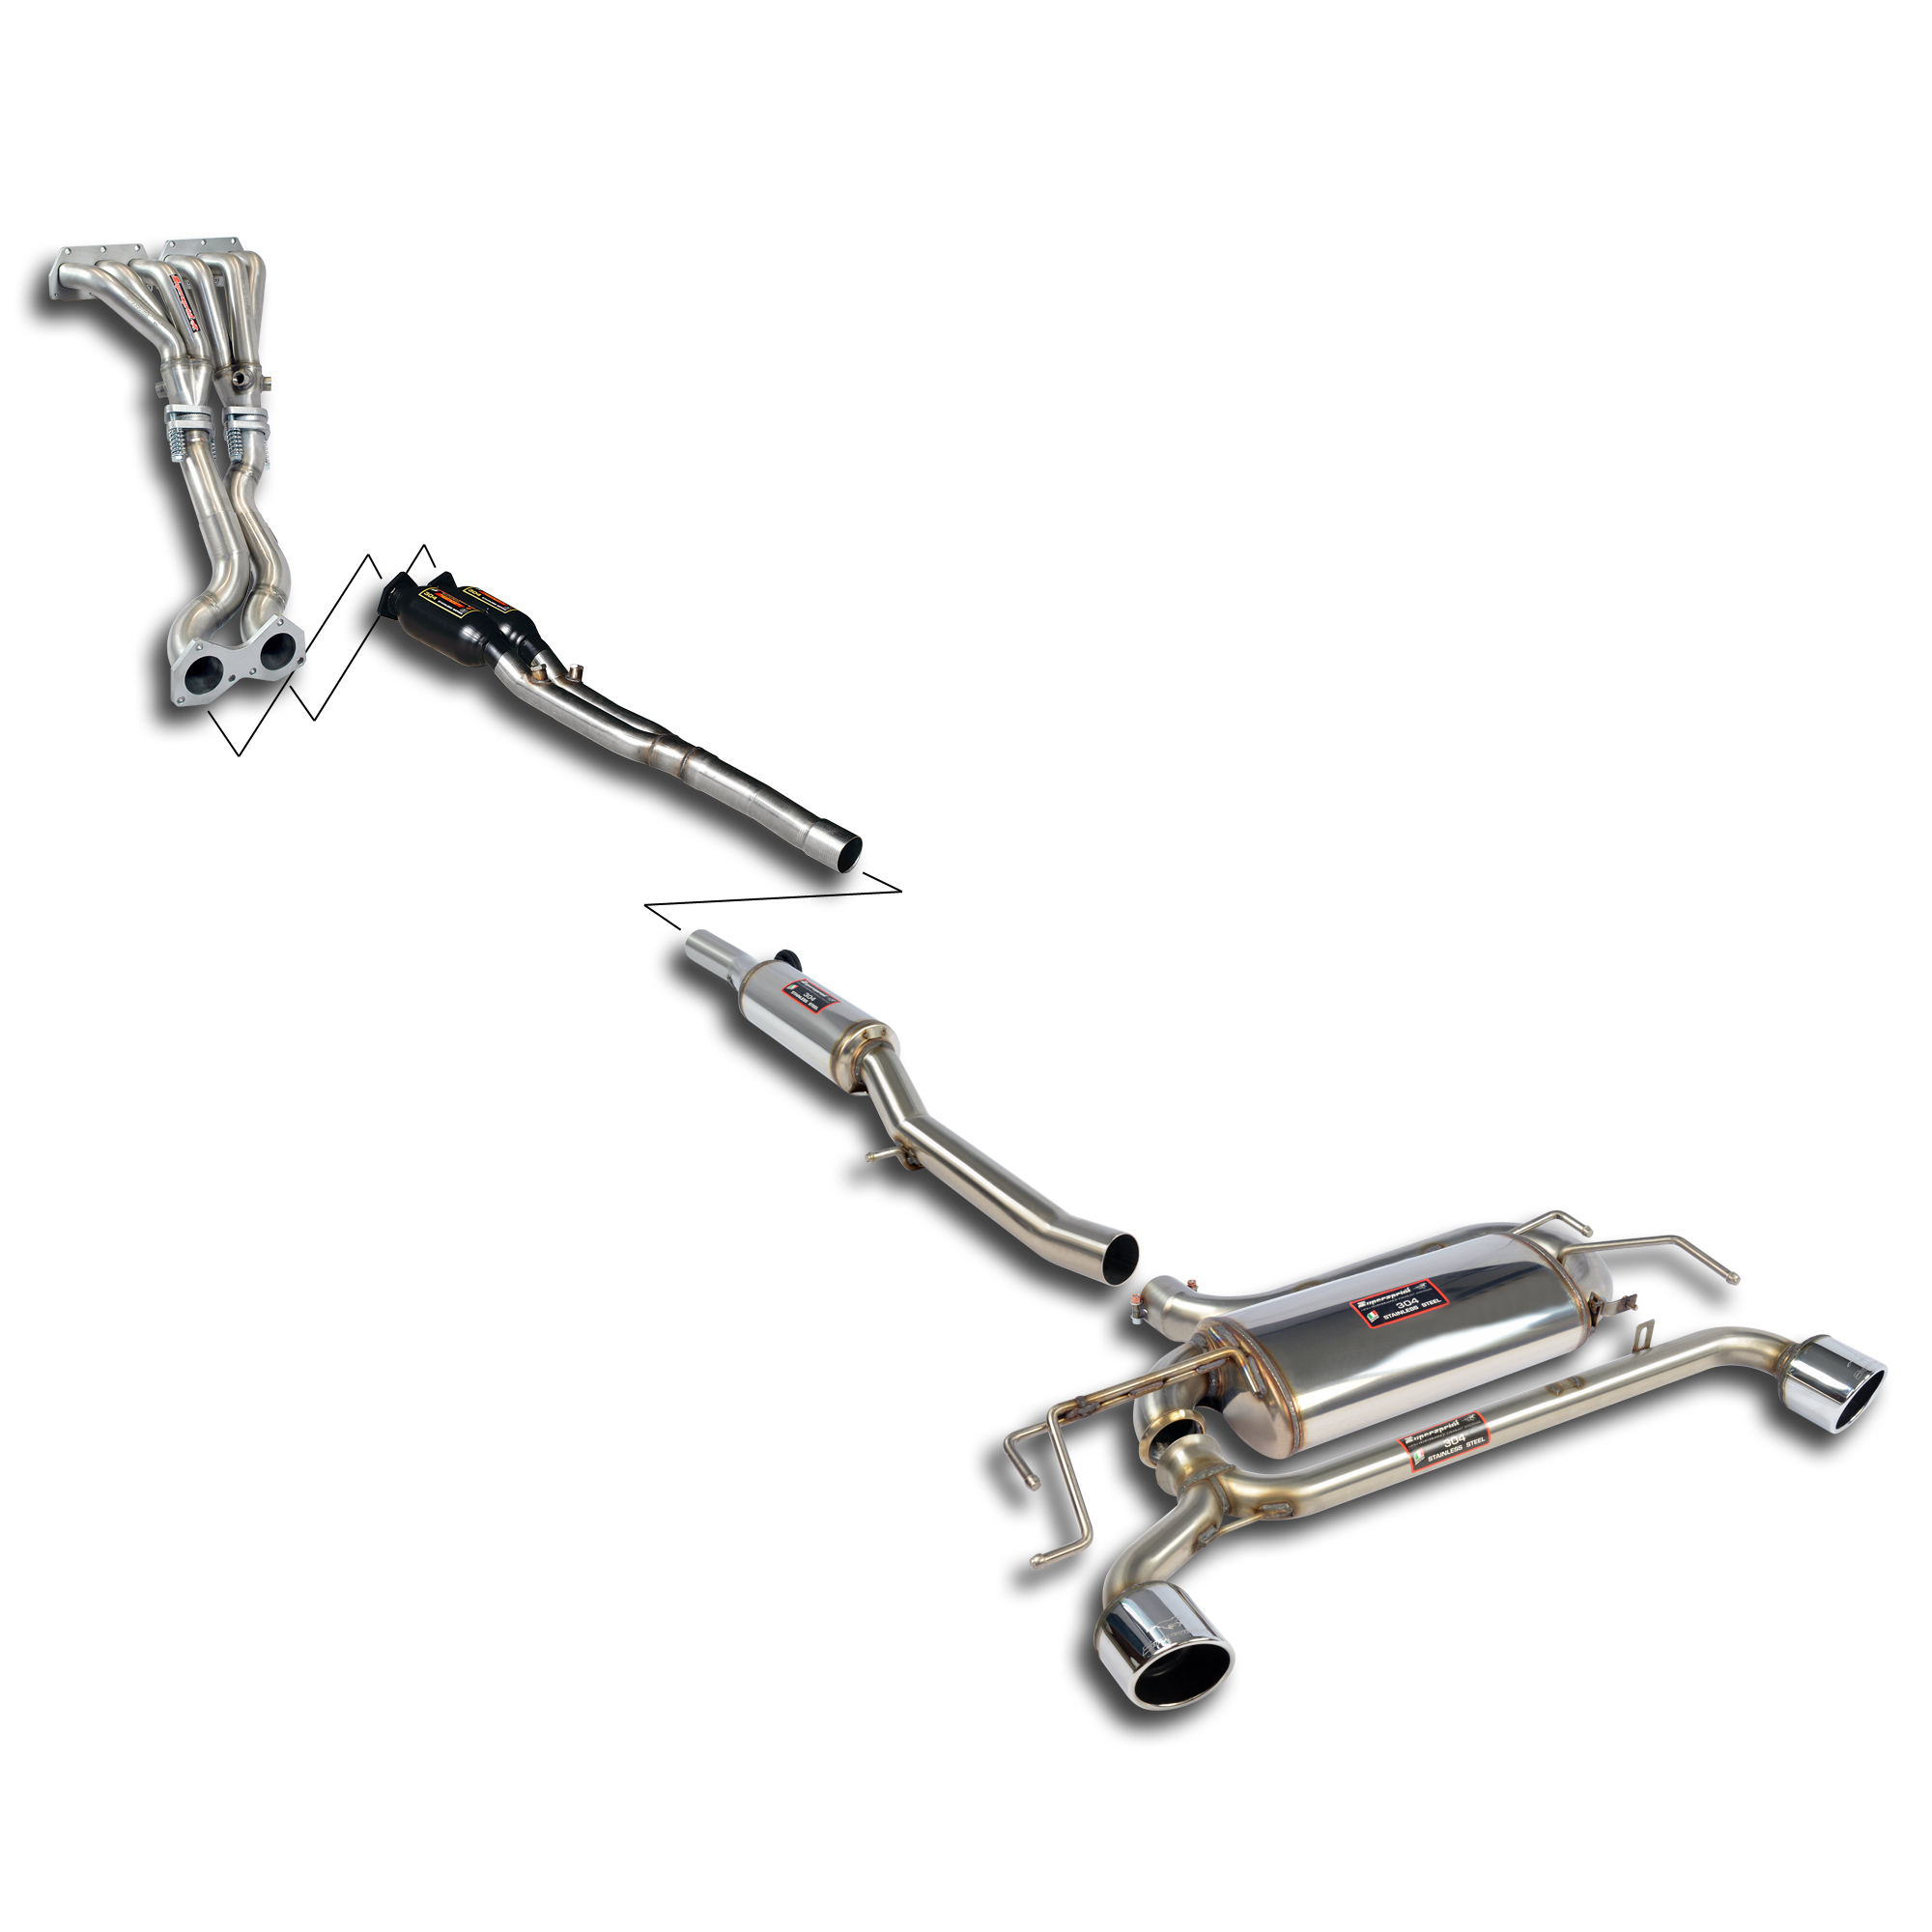 Volkswagen - VW GOLF IV R32 Street performance pack, performance exhaust systems